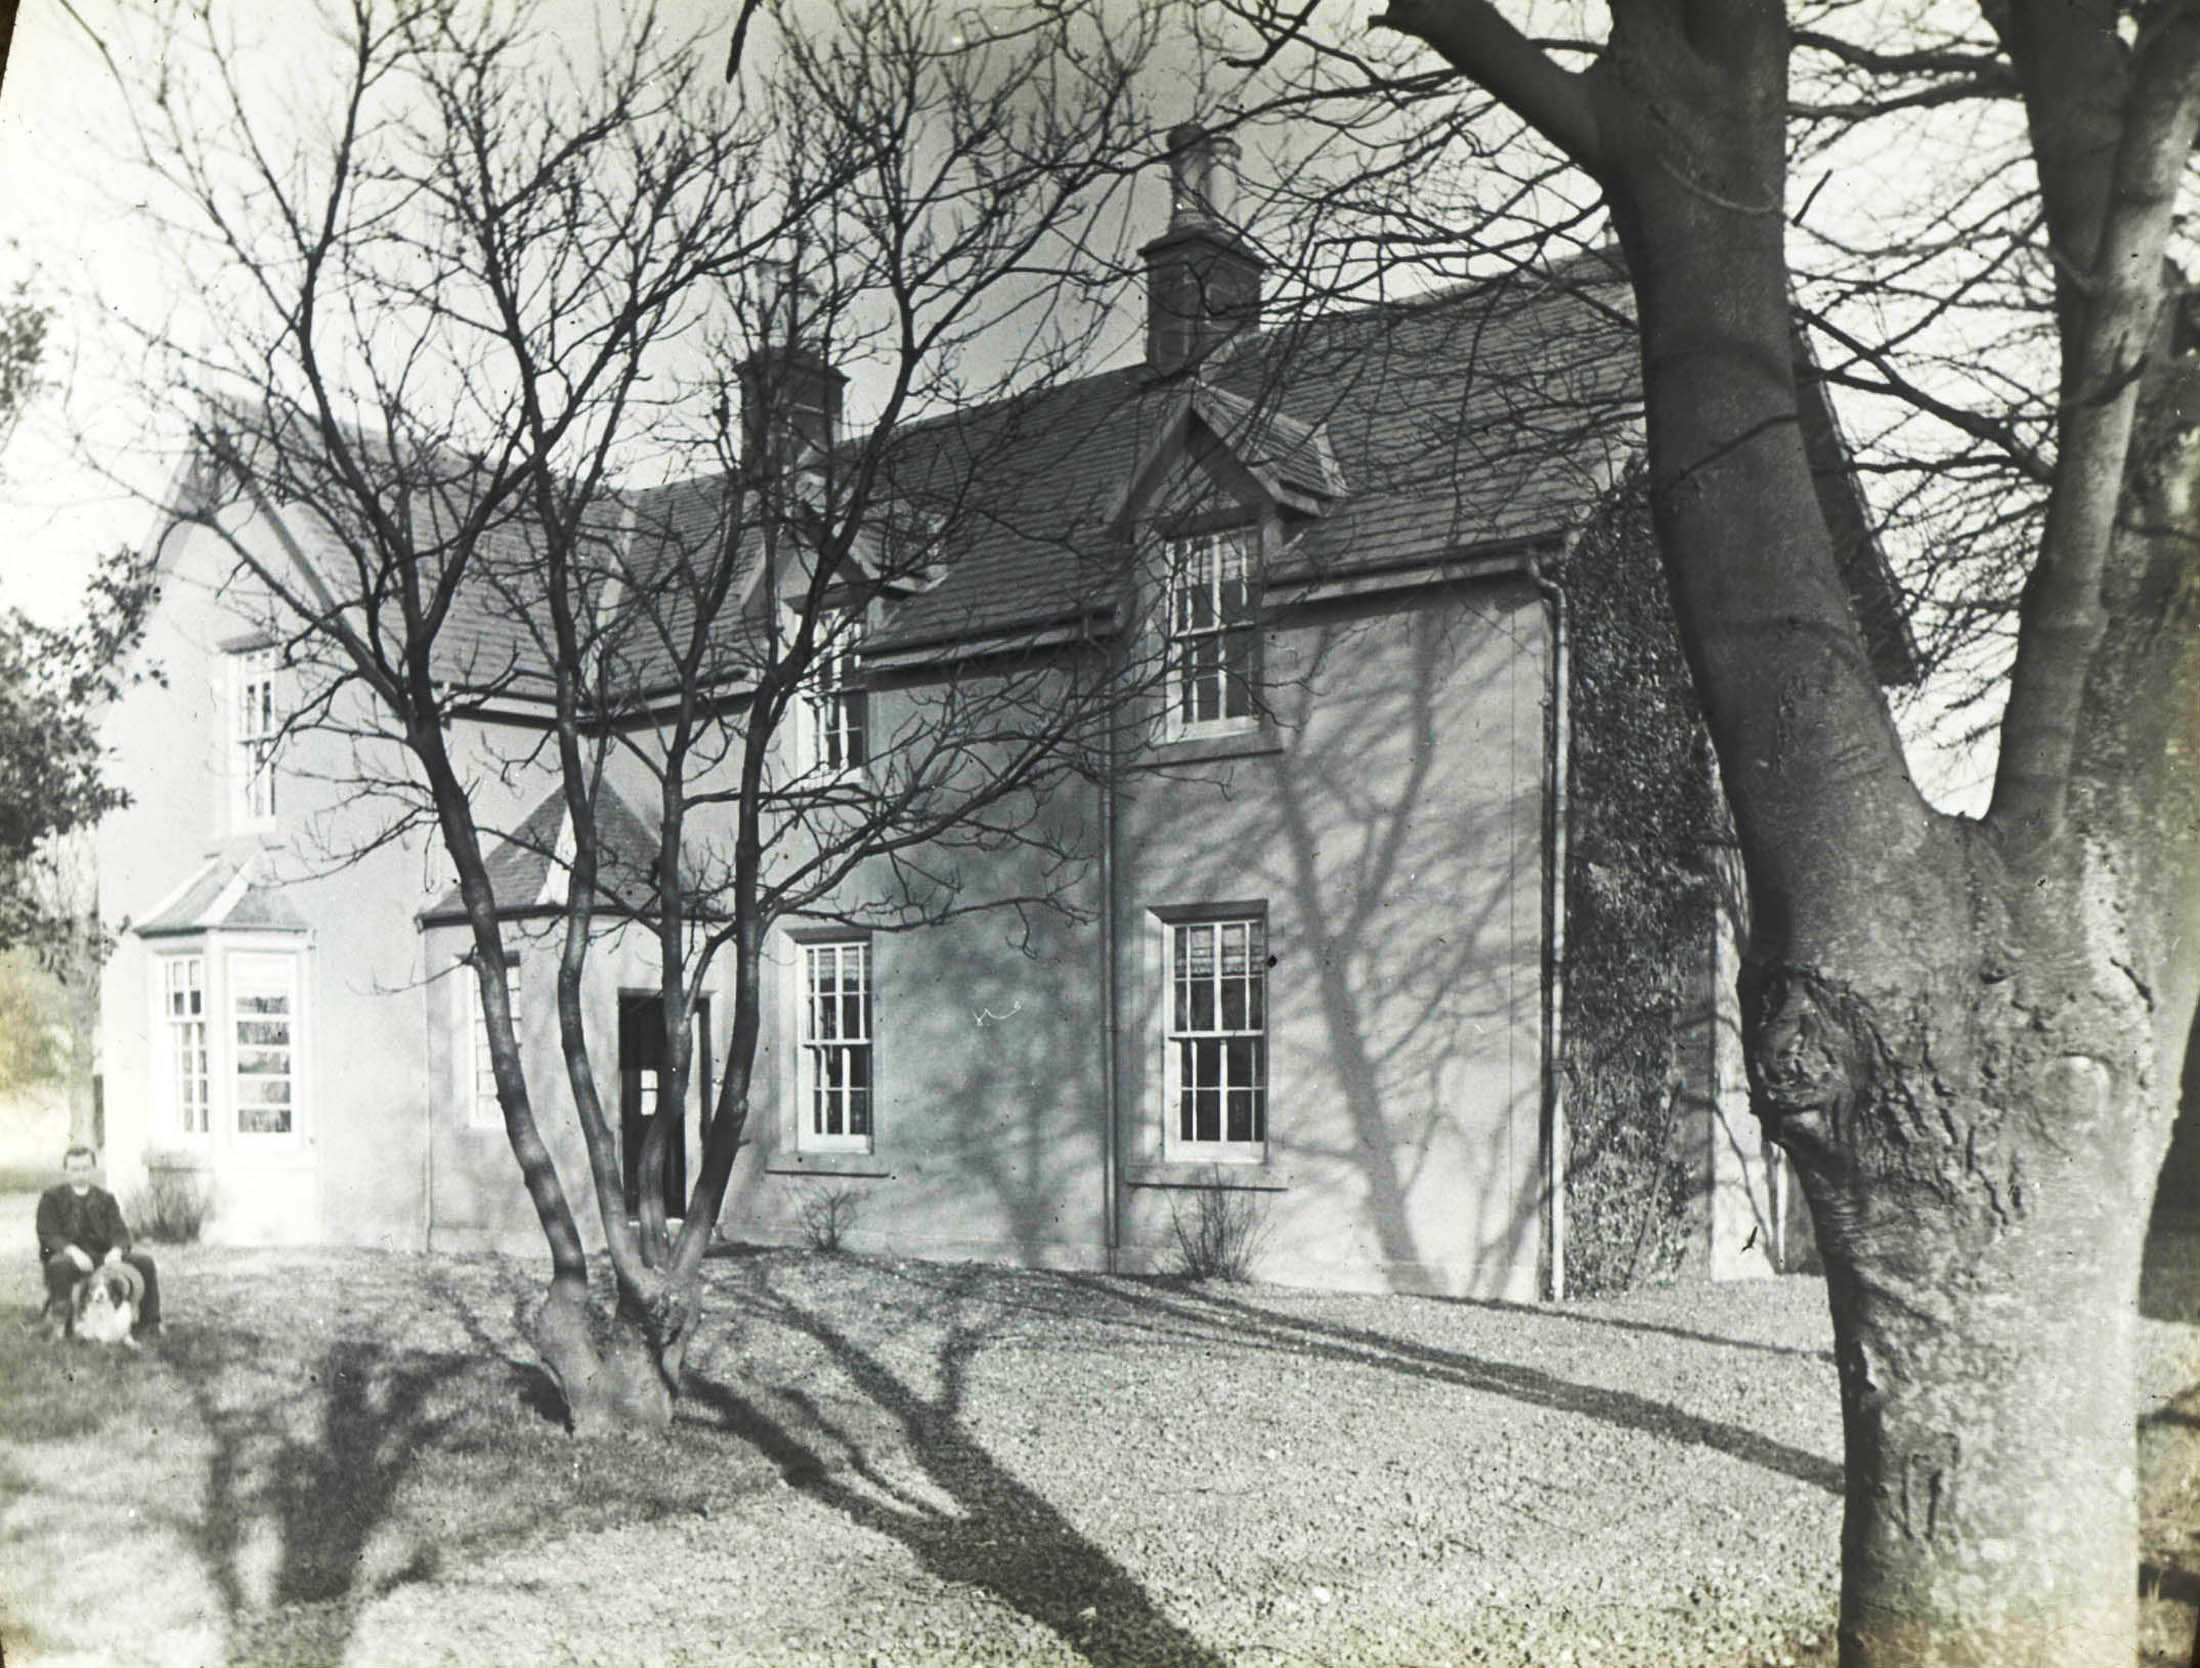 8-congregational-manse-vicars-rd-c-1900-purchased-for-900-pounds-in-1904